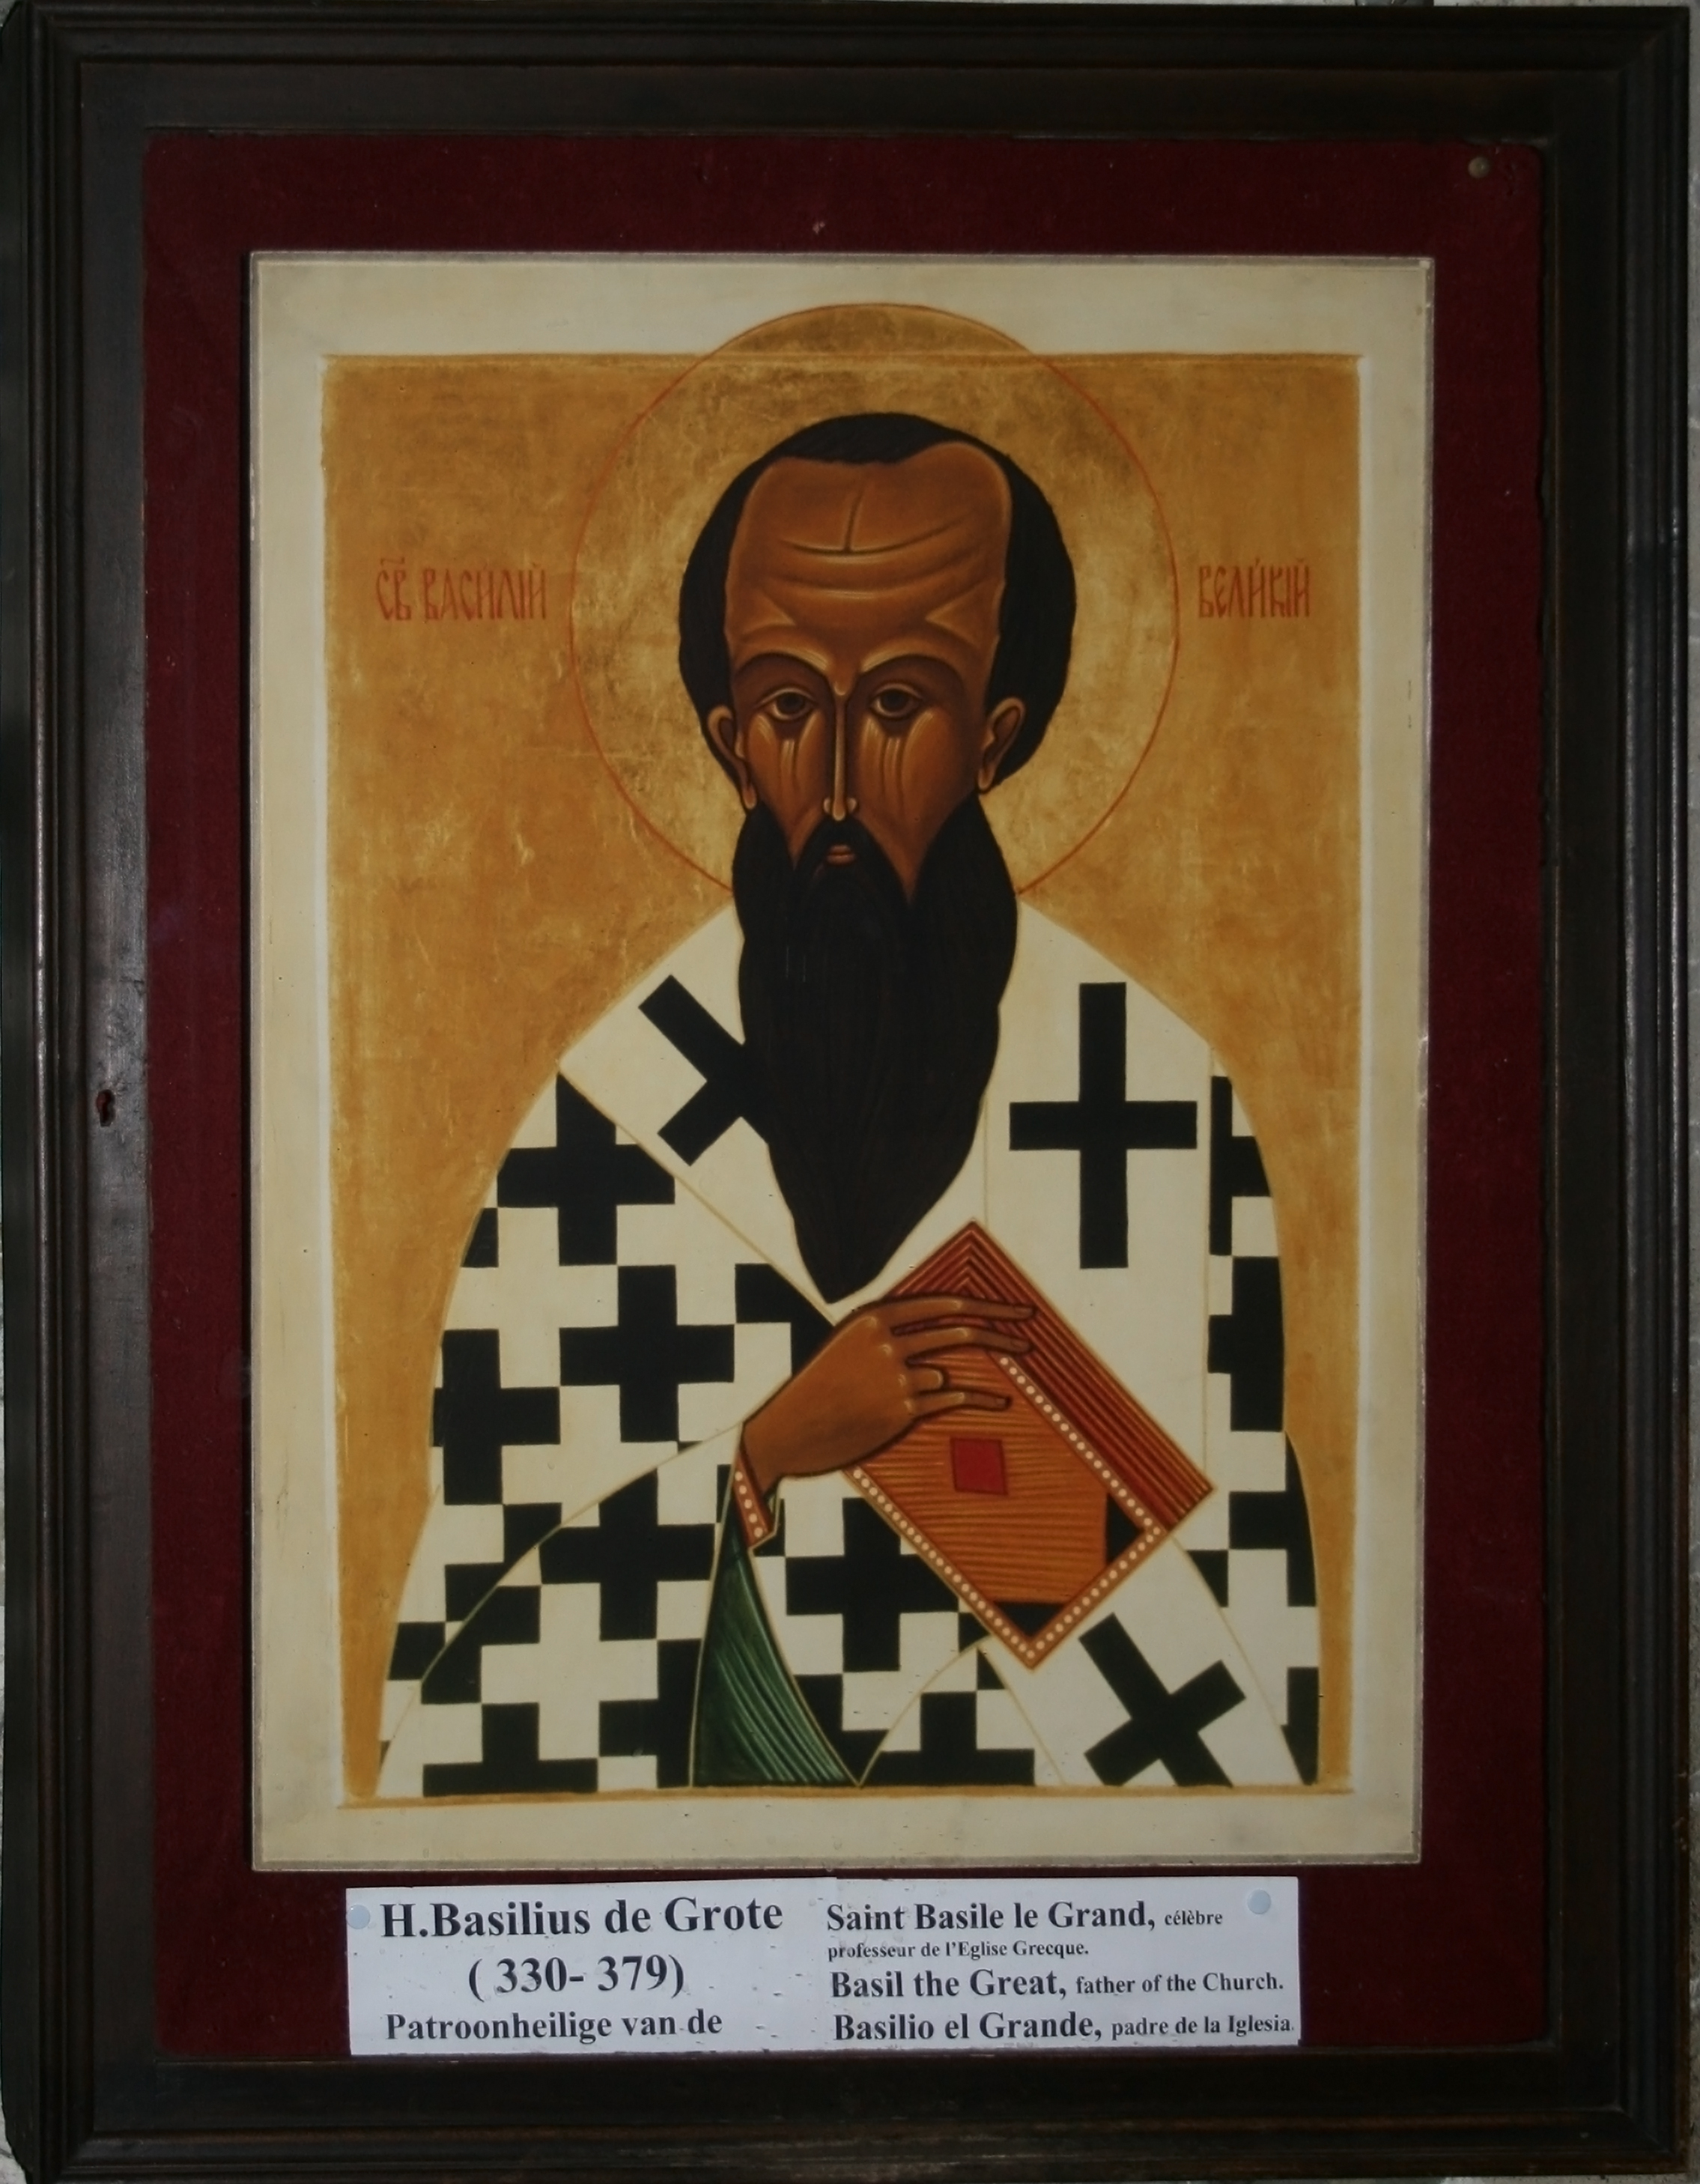 St. Basil the Great - January 2